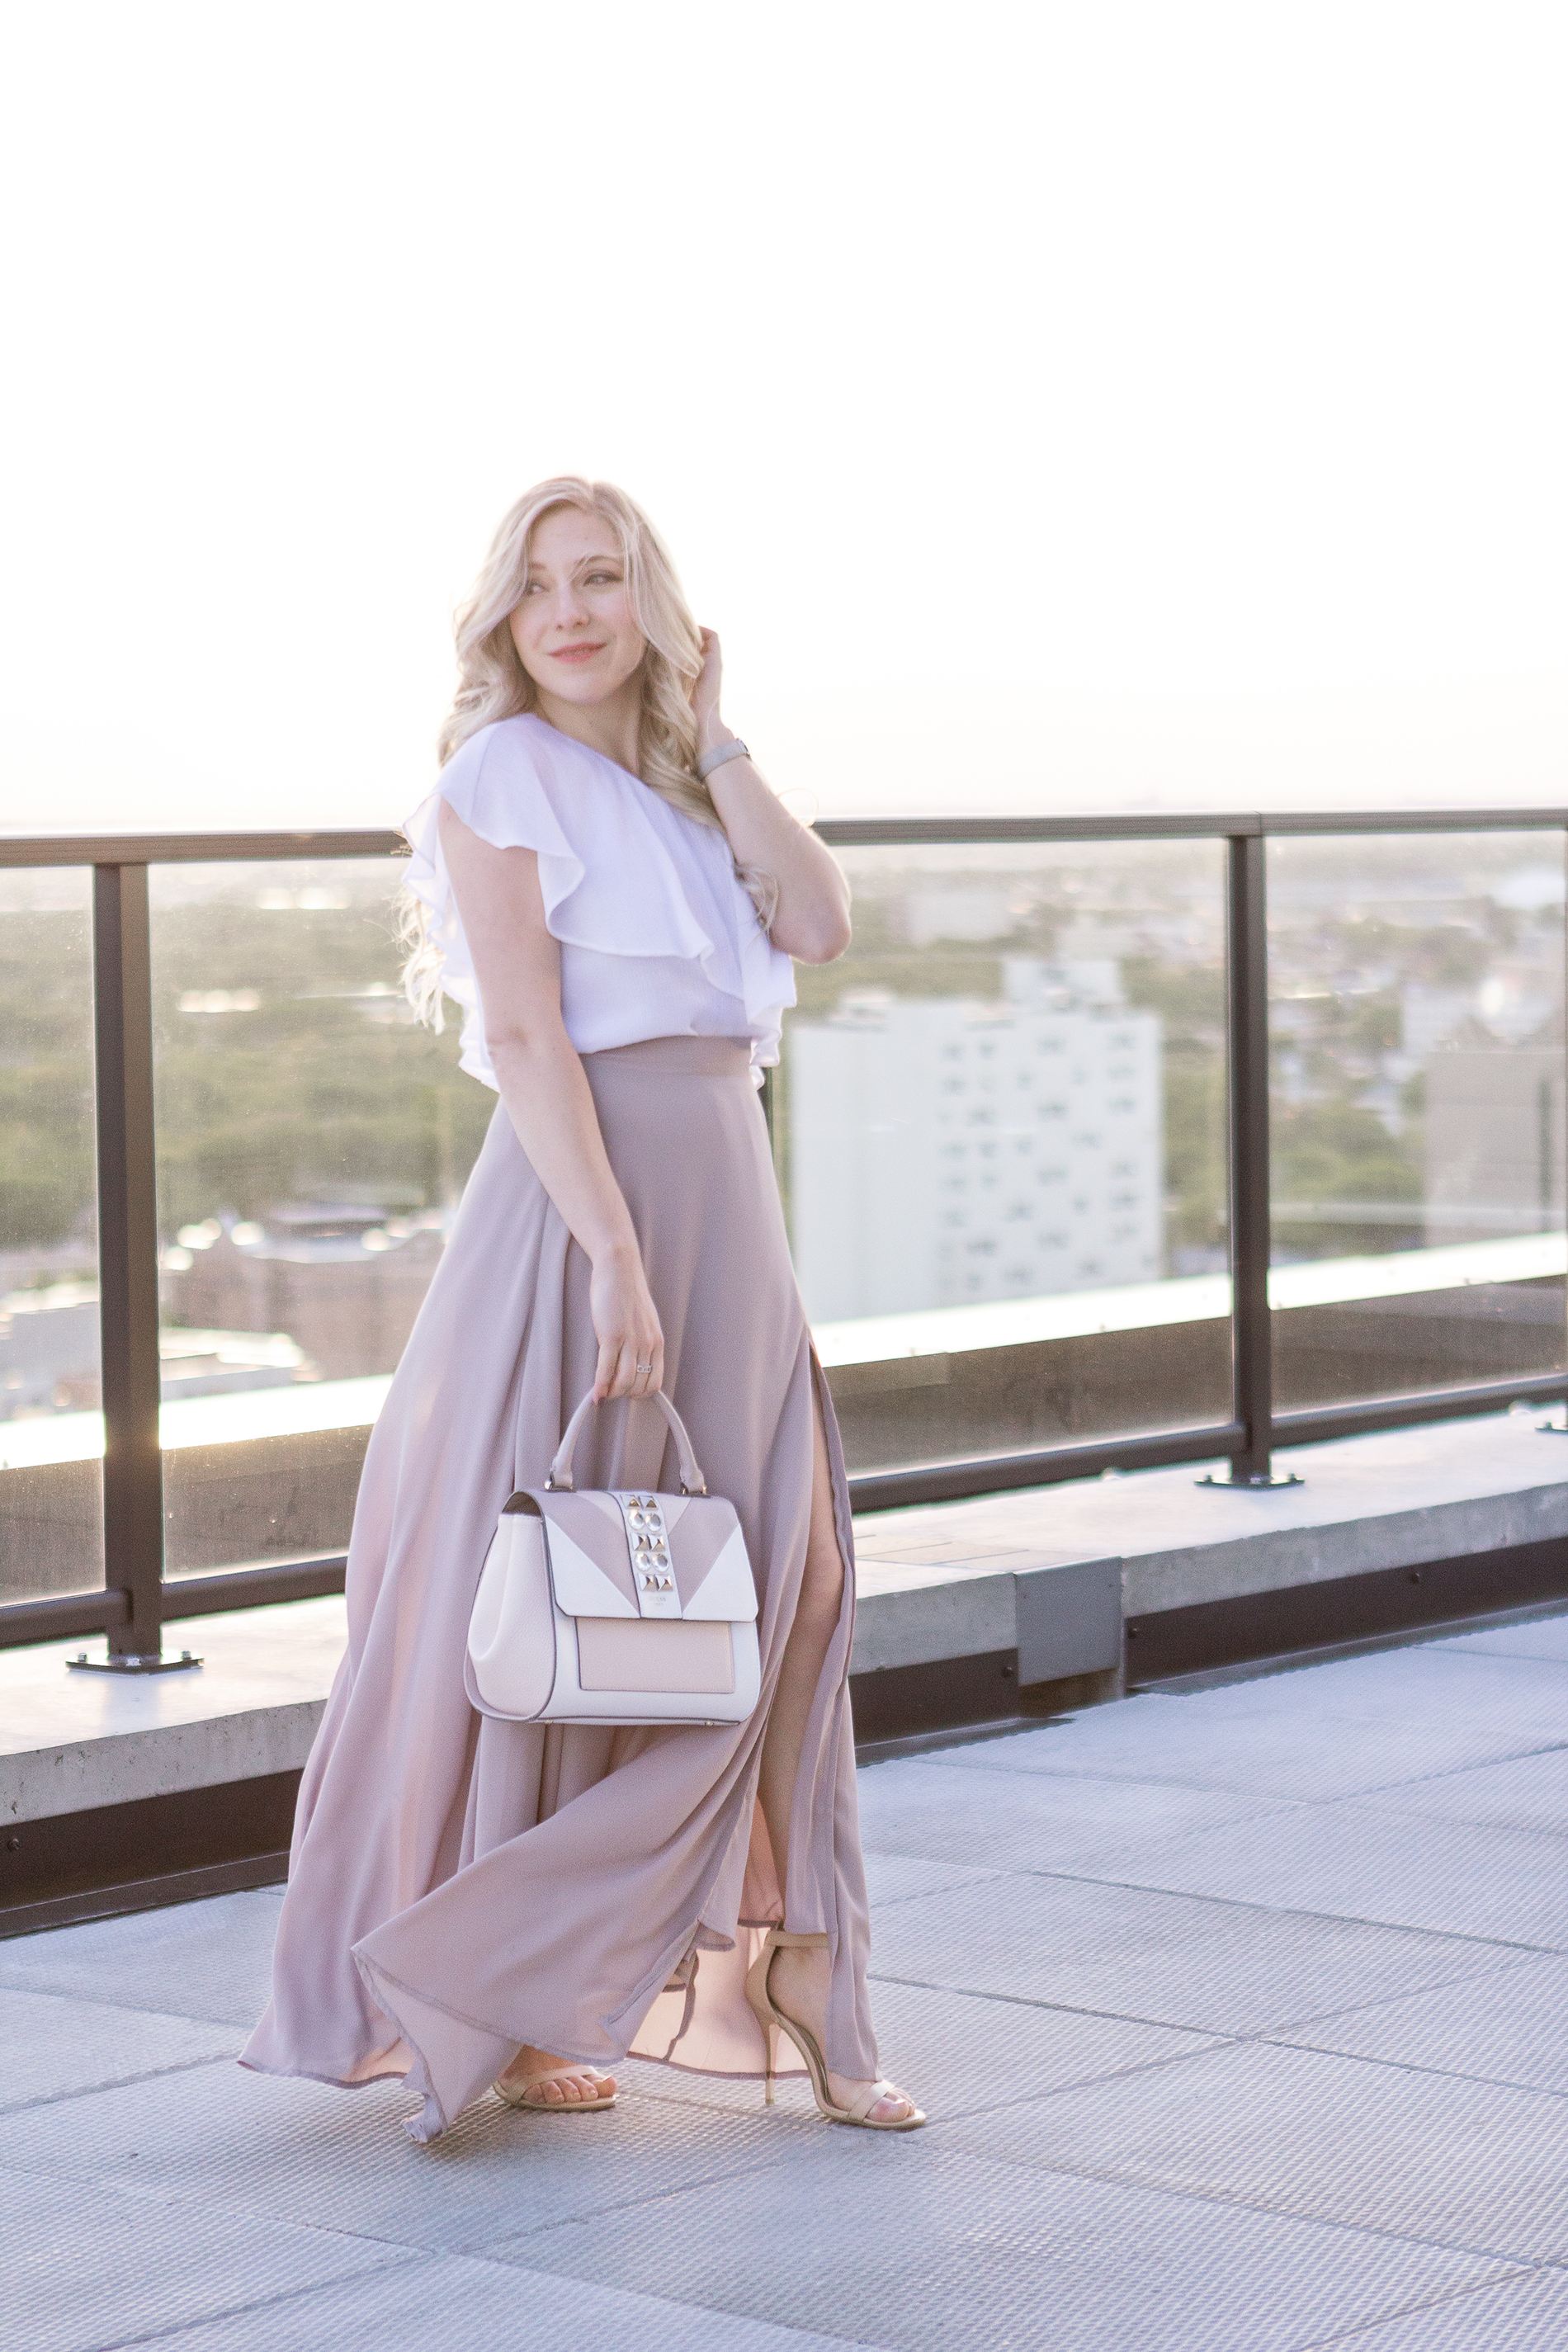 How to make your wardrobe look more expensive. 3 tips from a fashion blogger.